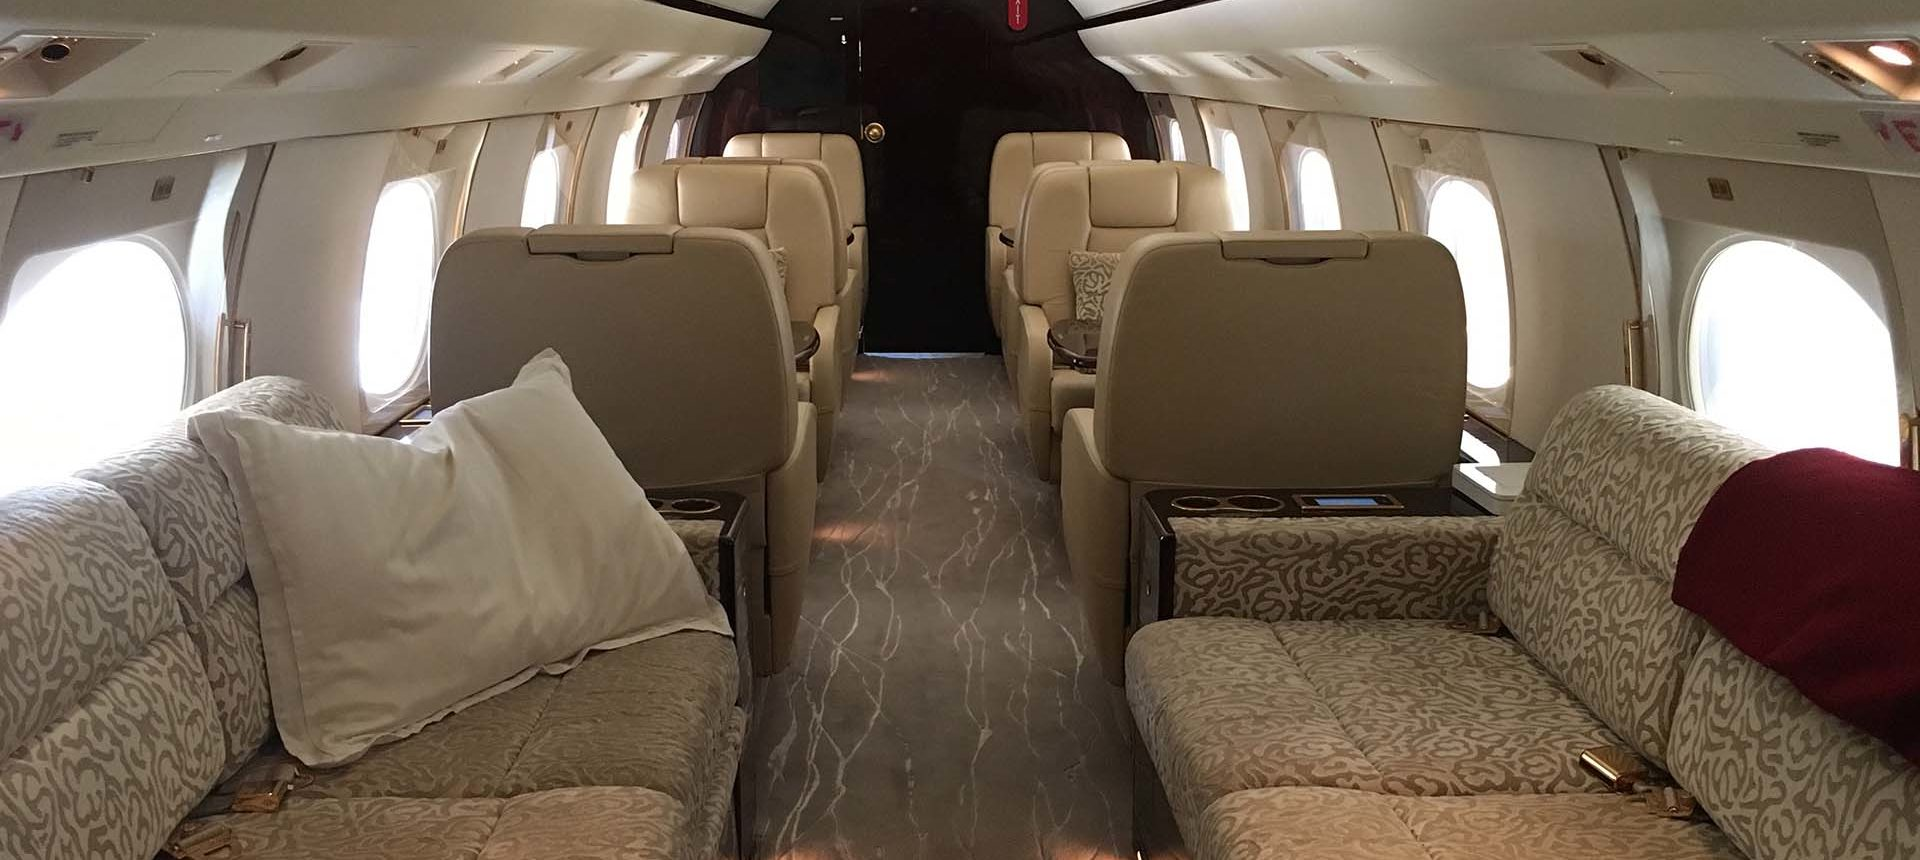 G450-3 Aft cabin looking forwrad